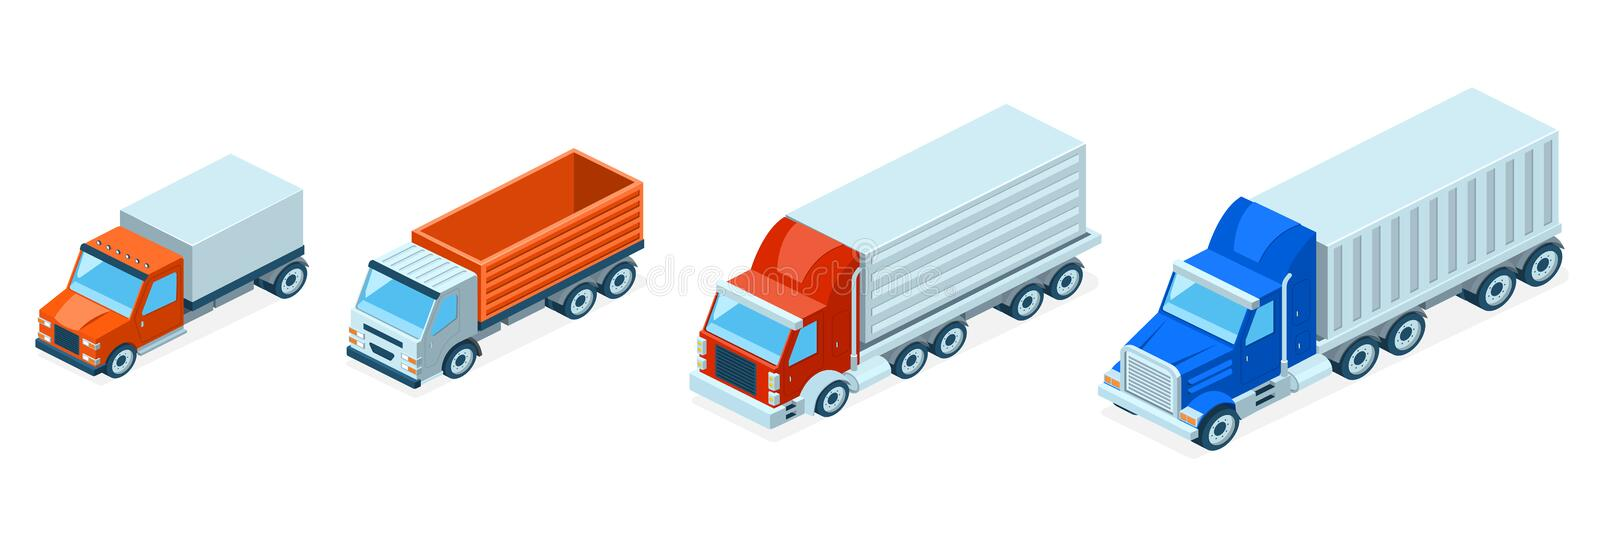 Vector 3d isometric trucks, lorries. Shipping concept royalty free illustration